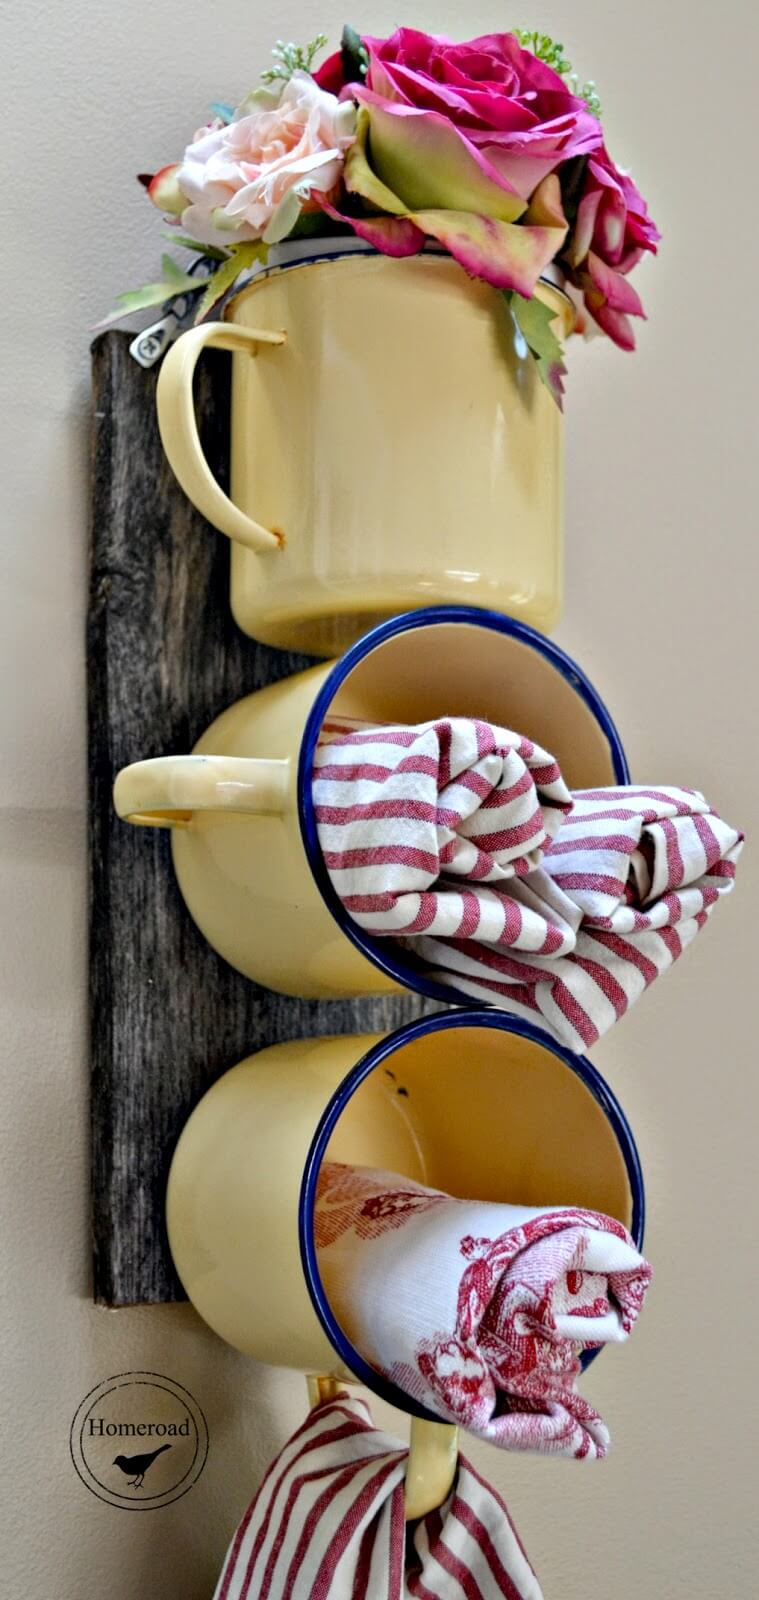 Don't Throw Away Those Chipped Mugs